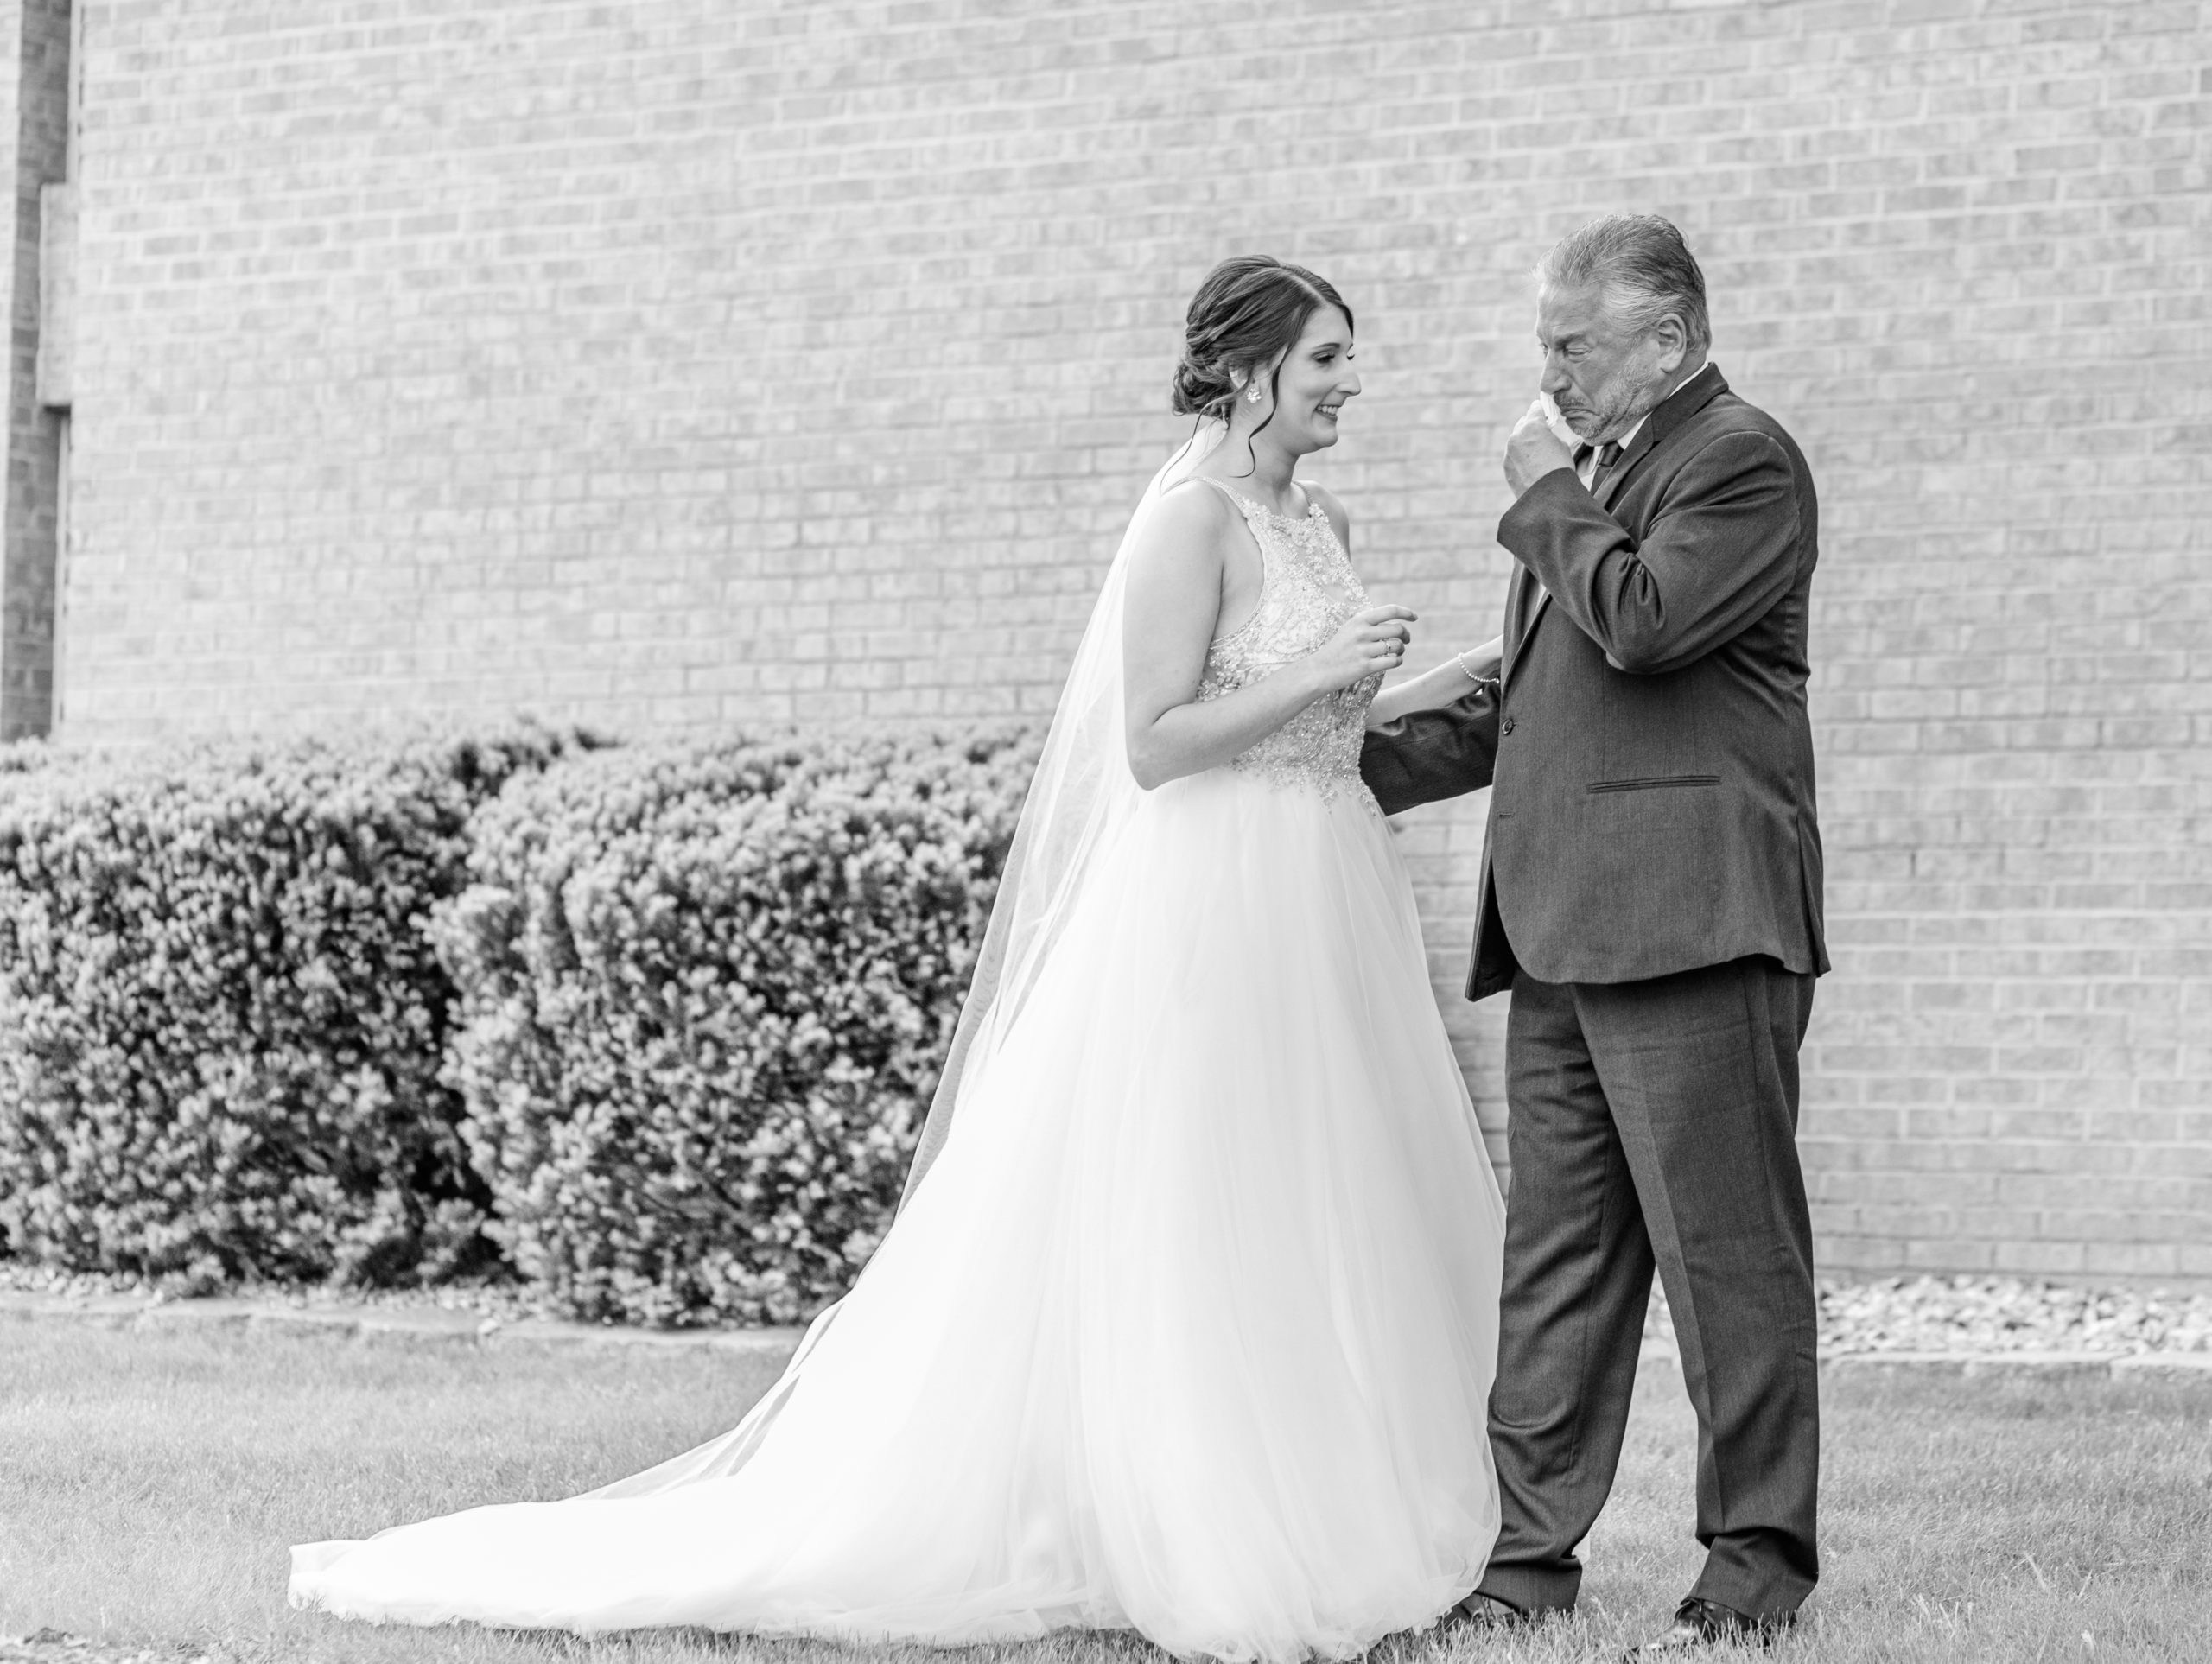 first look, father of the bride, bride, black and white, tears, crying, happiness, southern illinois photography